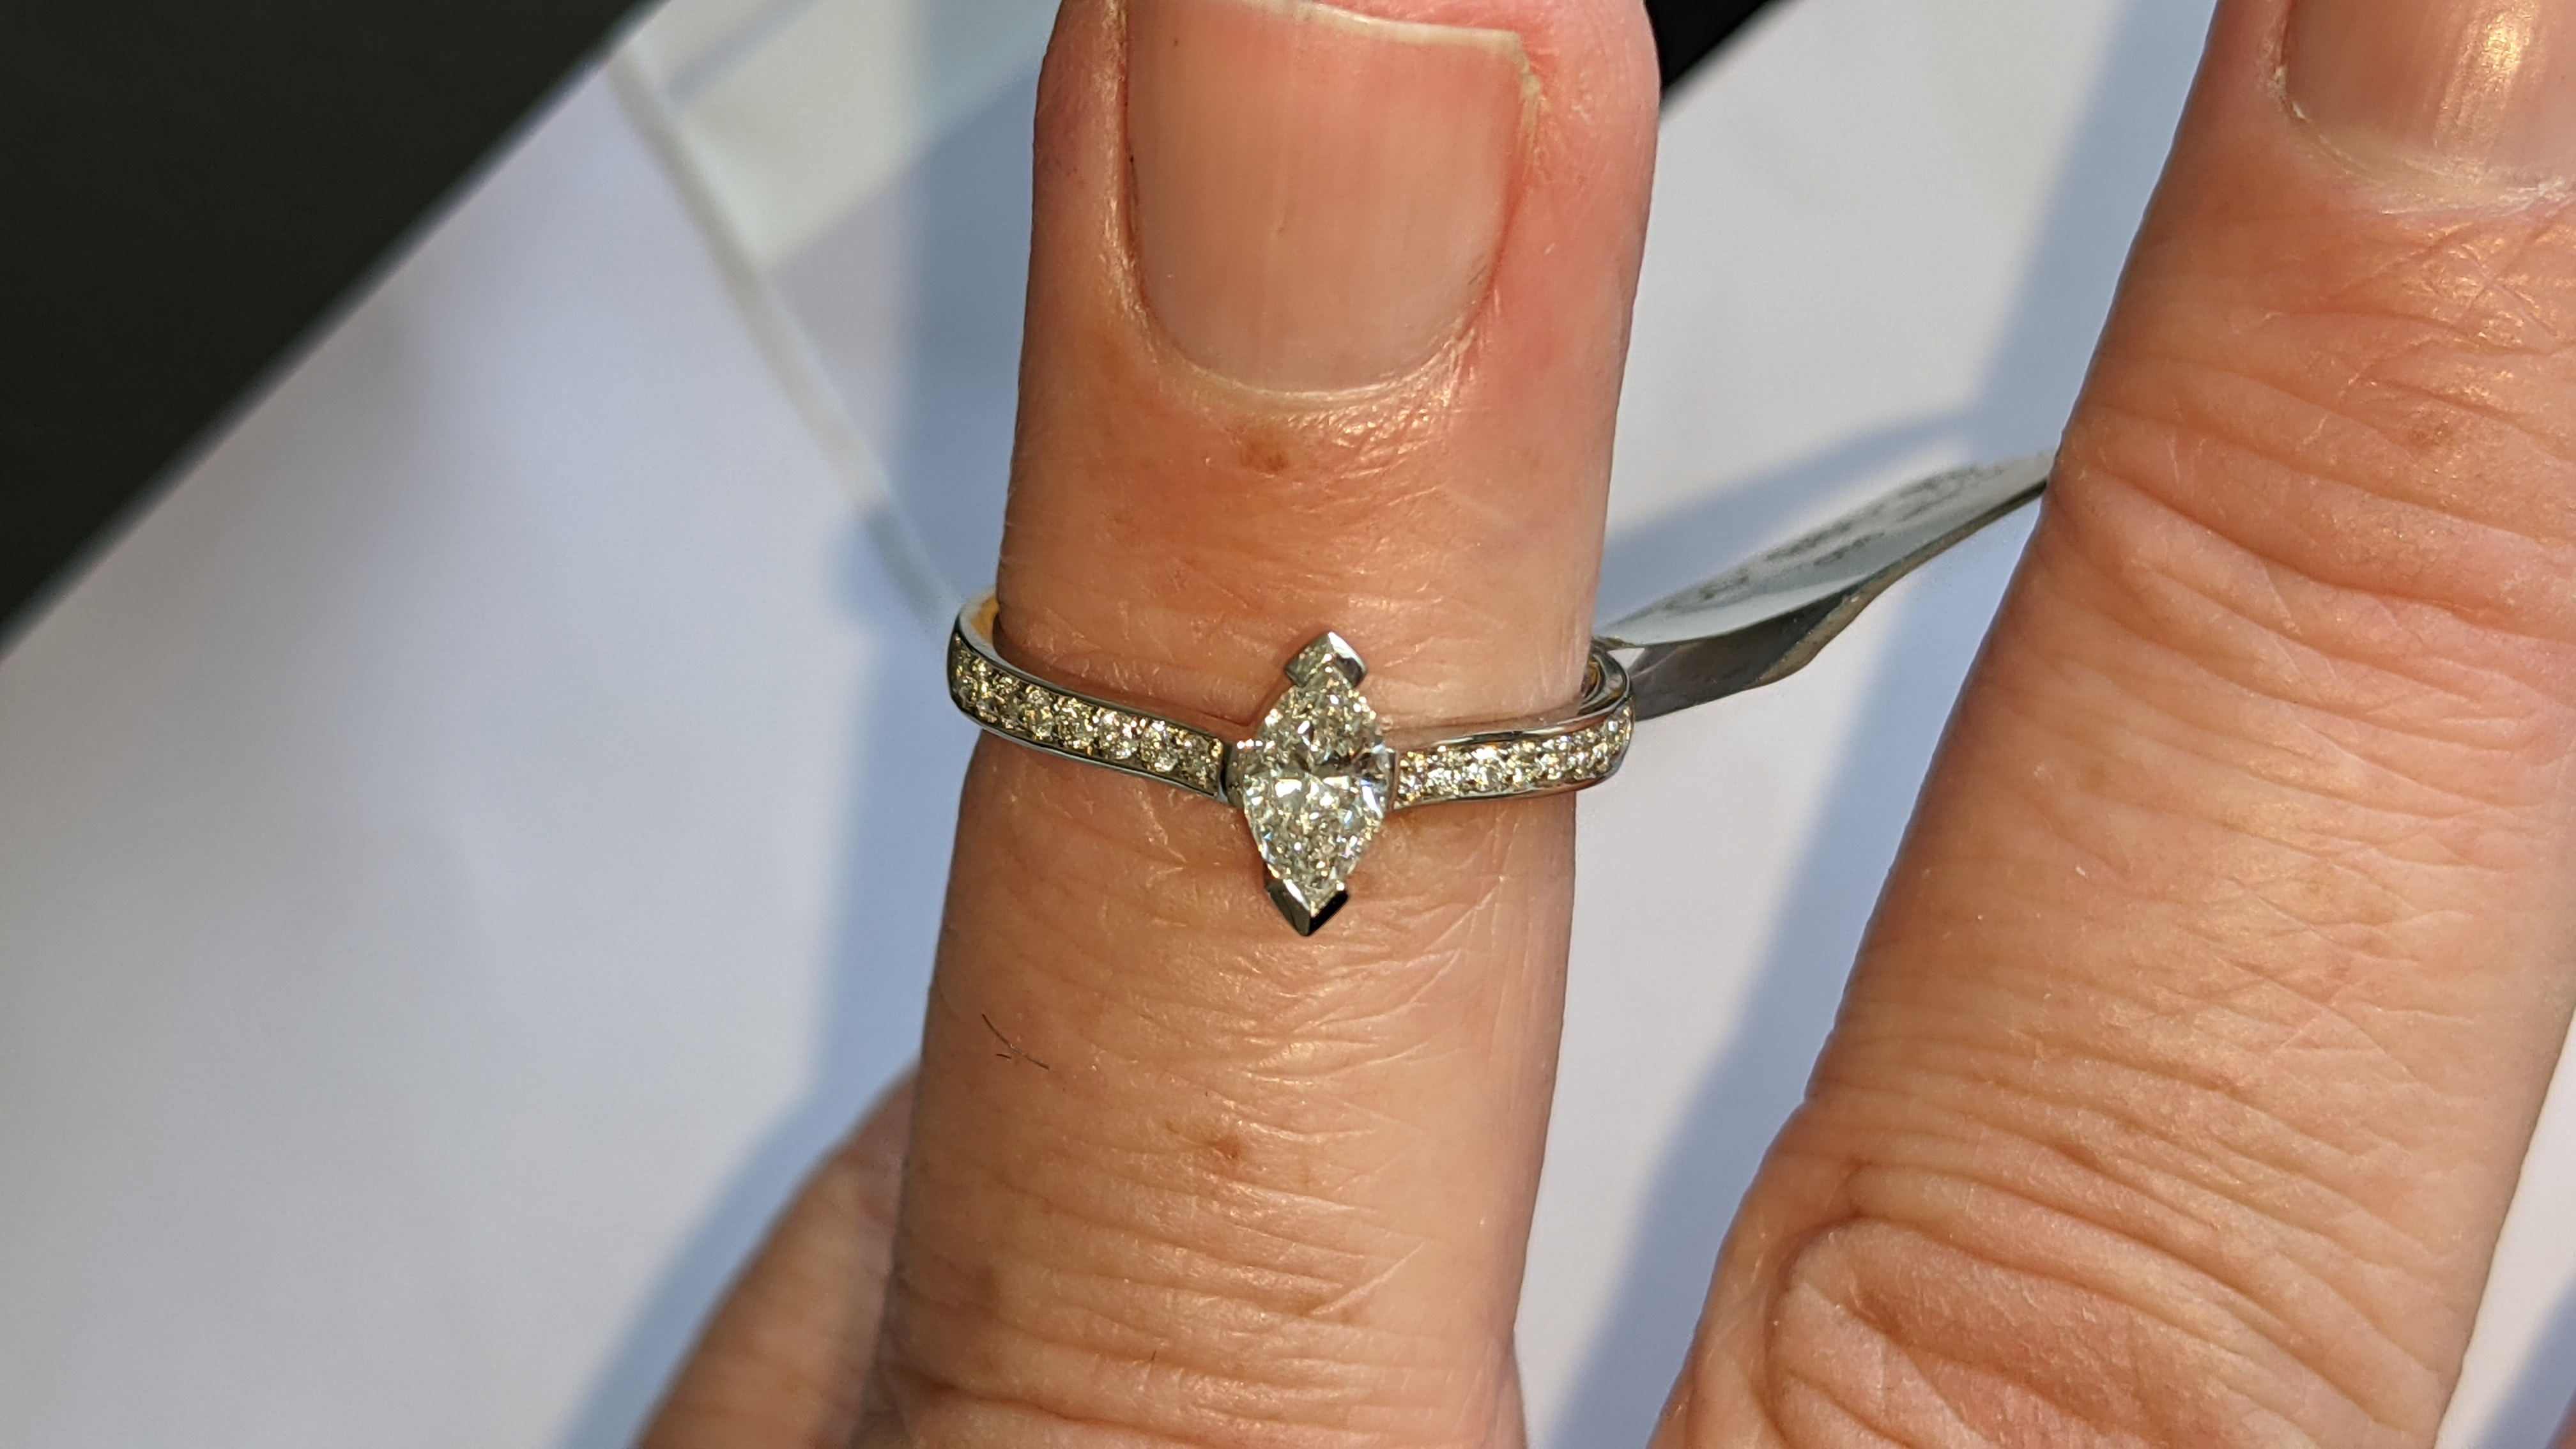 Platinum 950 ring with marquise shaped central diamond plus diamonds on the shoulders either side, t - Image 15 of 16